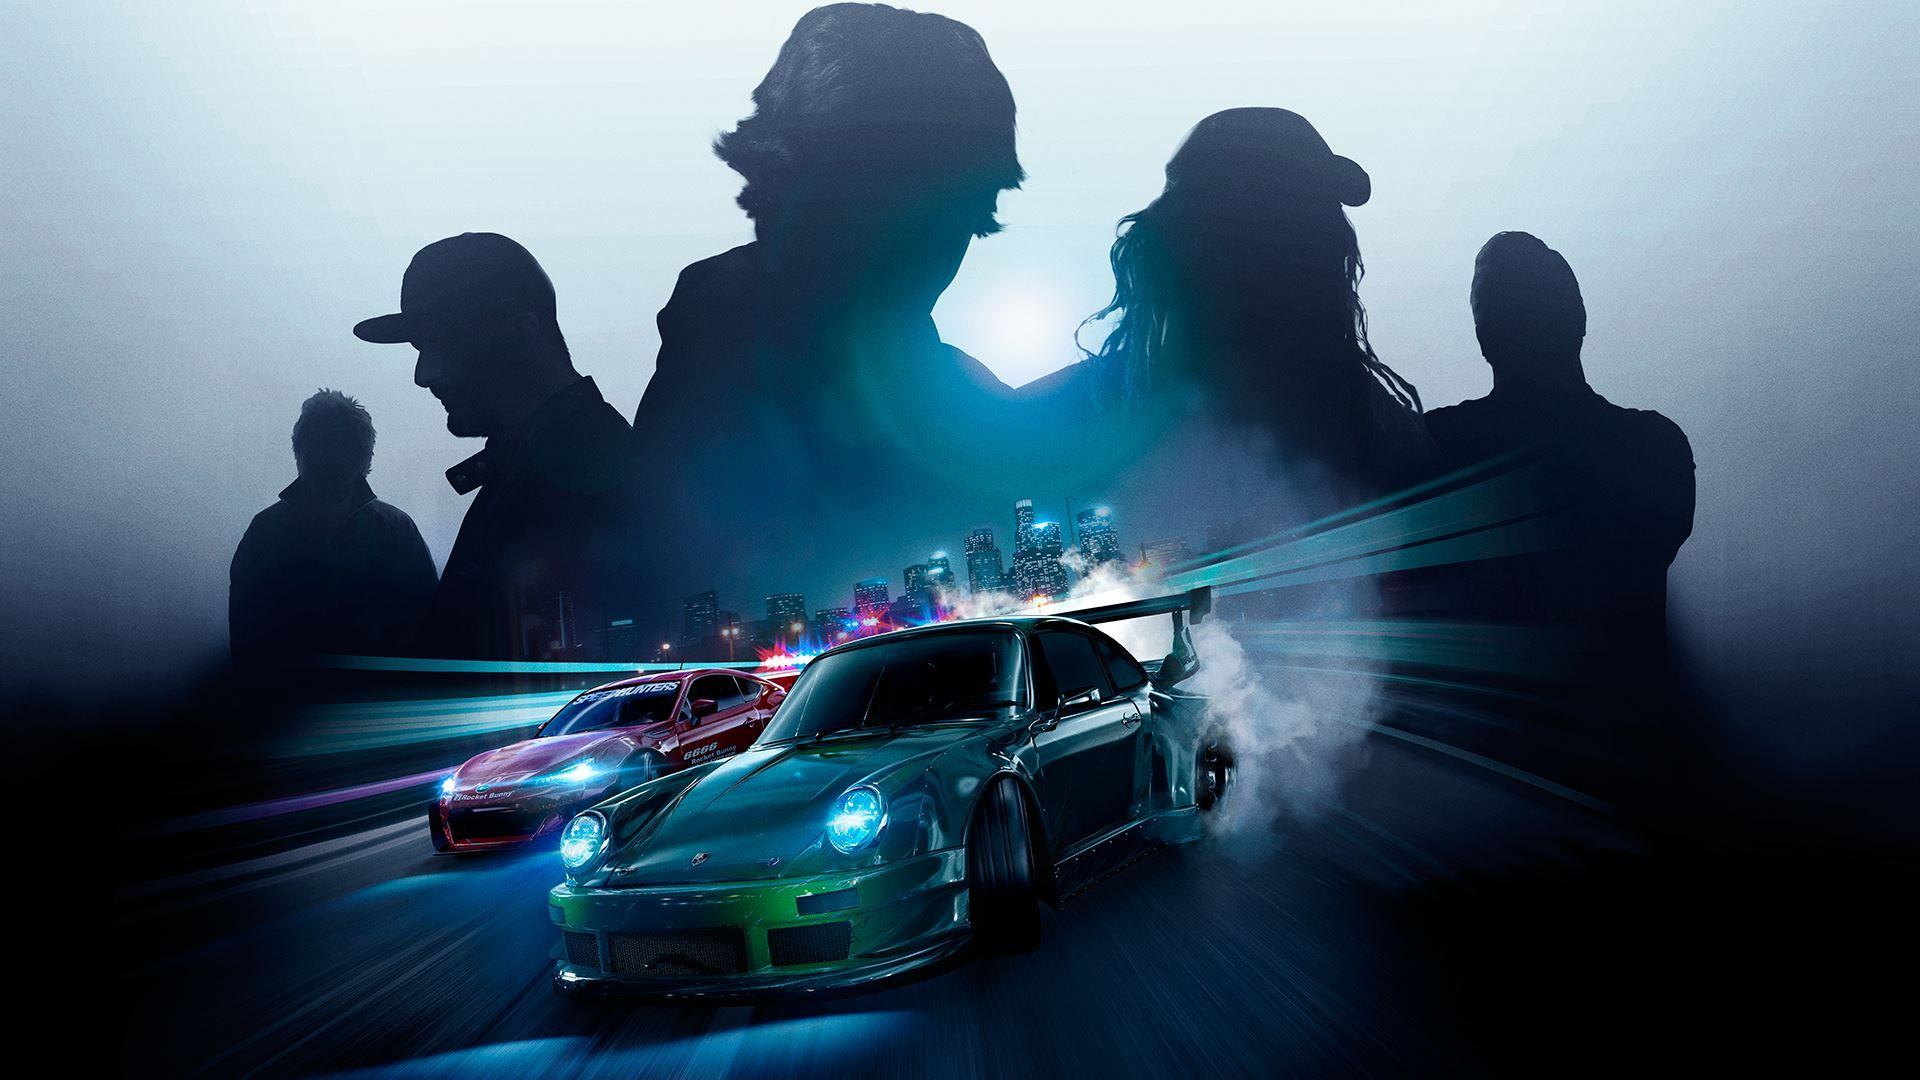 1920x1080 need for speed best wallpapers hd for desktop 1920x1080 need for speed best wallpapers hd for desktop wallpapers and backgronds pinterest voltagebd Gallery